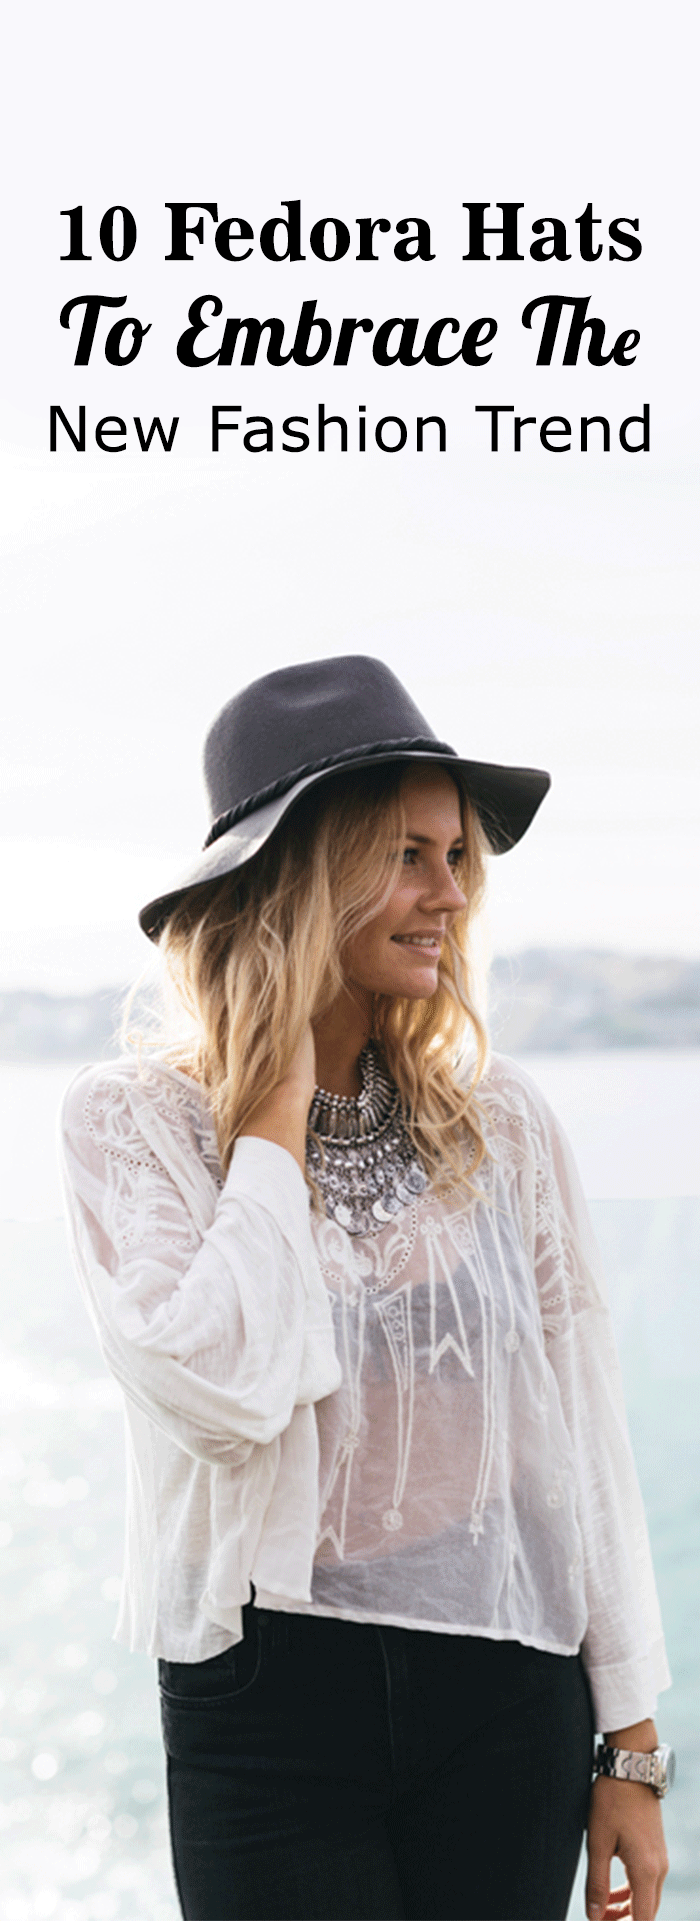 10 Fedora Hats To Embrace The New Fashion Trend